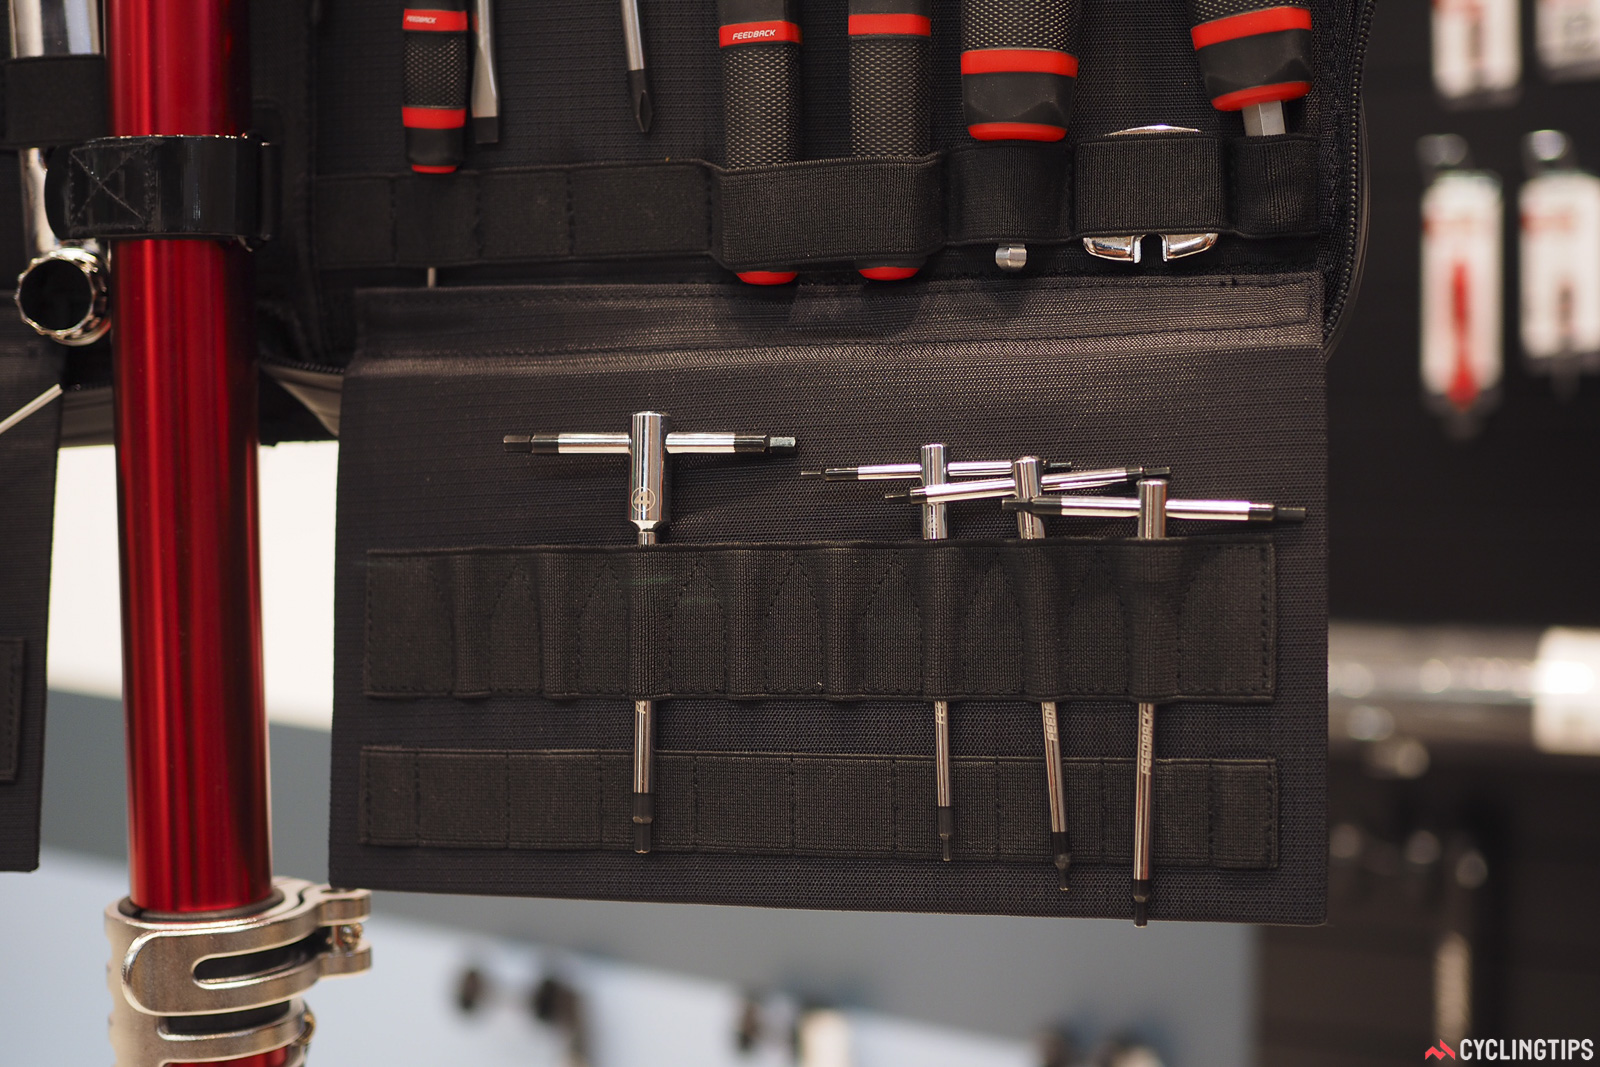 Although the Feedback Sports Team Edition tool kit already comes well stocked, there are a few empty slots left for additional tools depending on your needs (and budget), such as the company's new T-handle hex wrenches. Photo: James Huang.